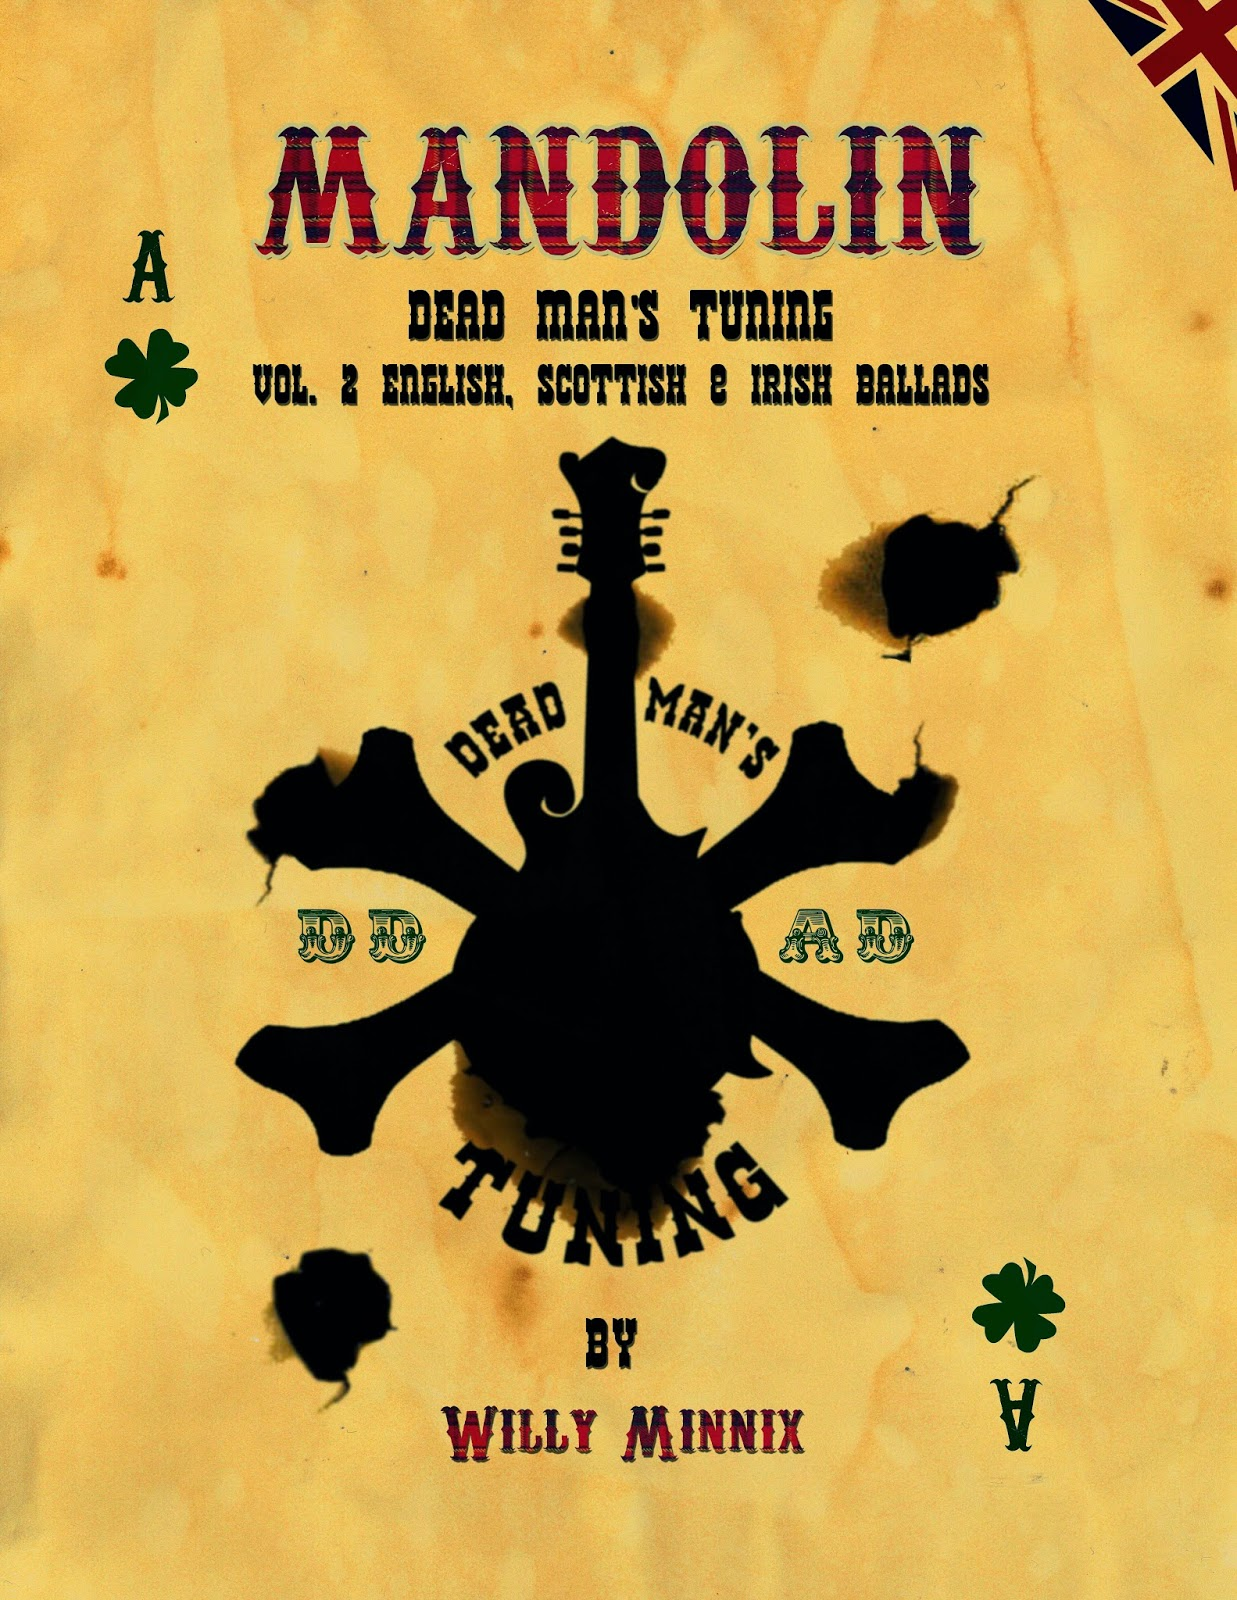 Mandolin Dead Man's Tuning Vol. 2 English Scottish and Irish Ballads